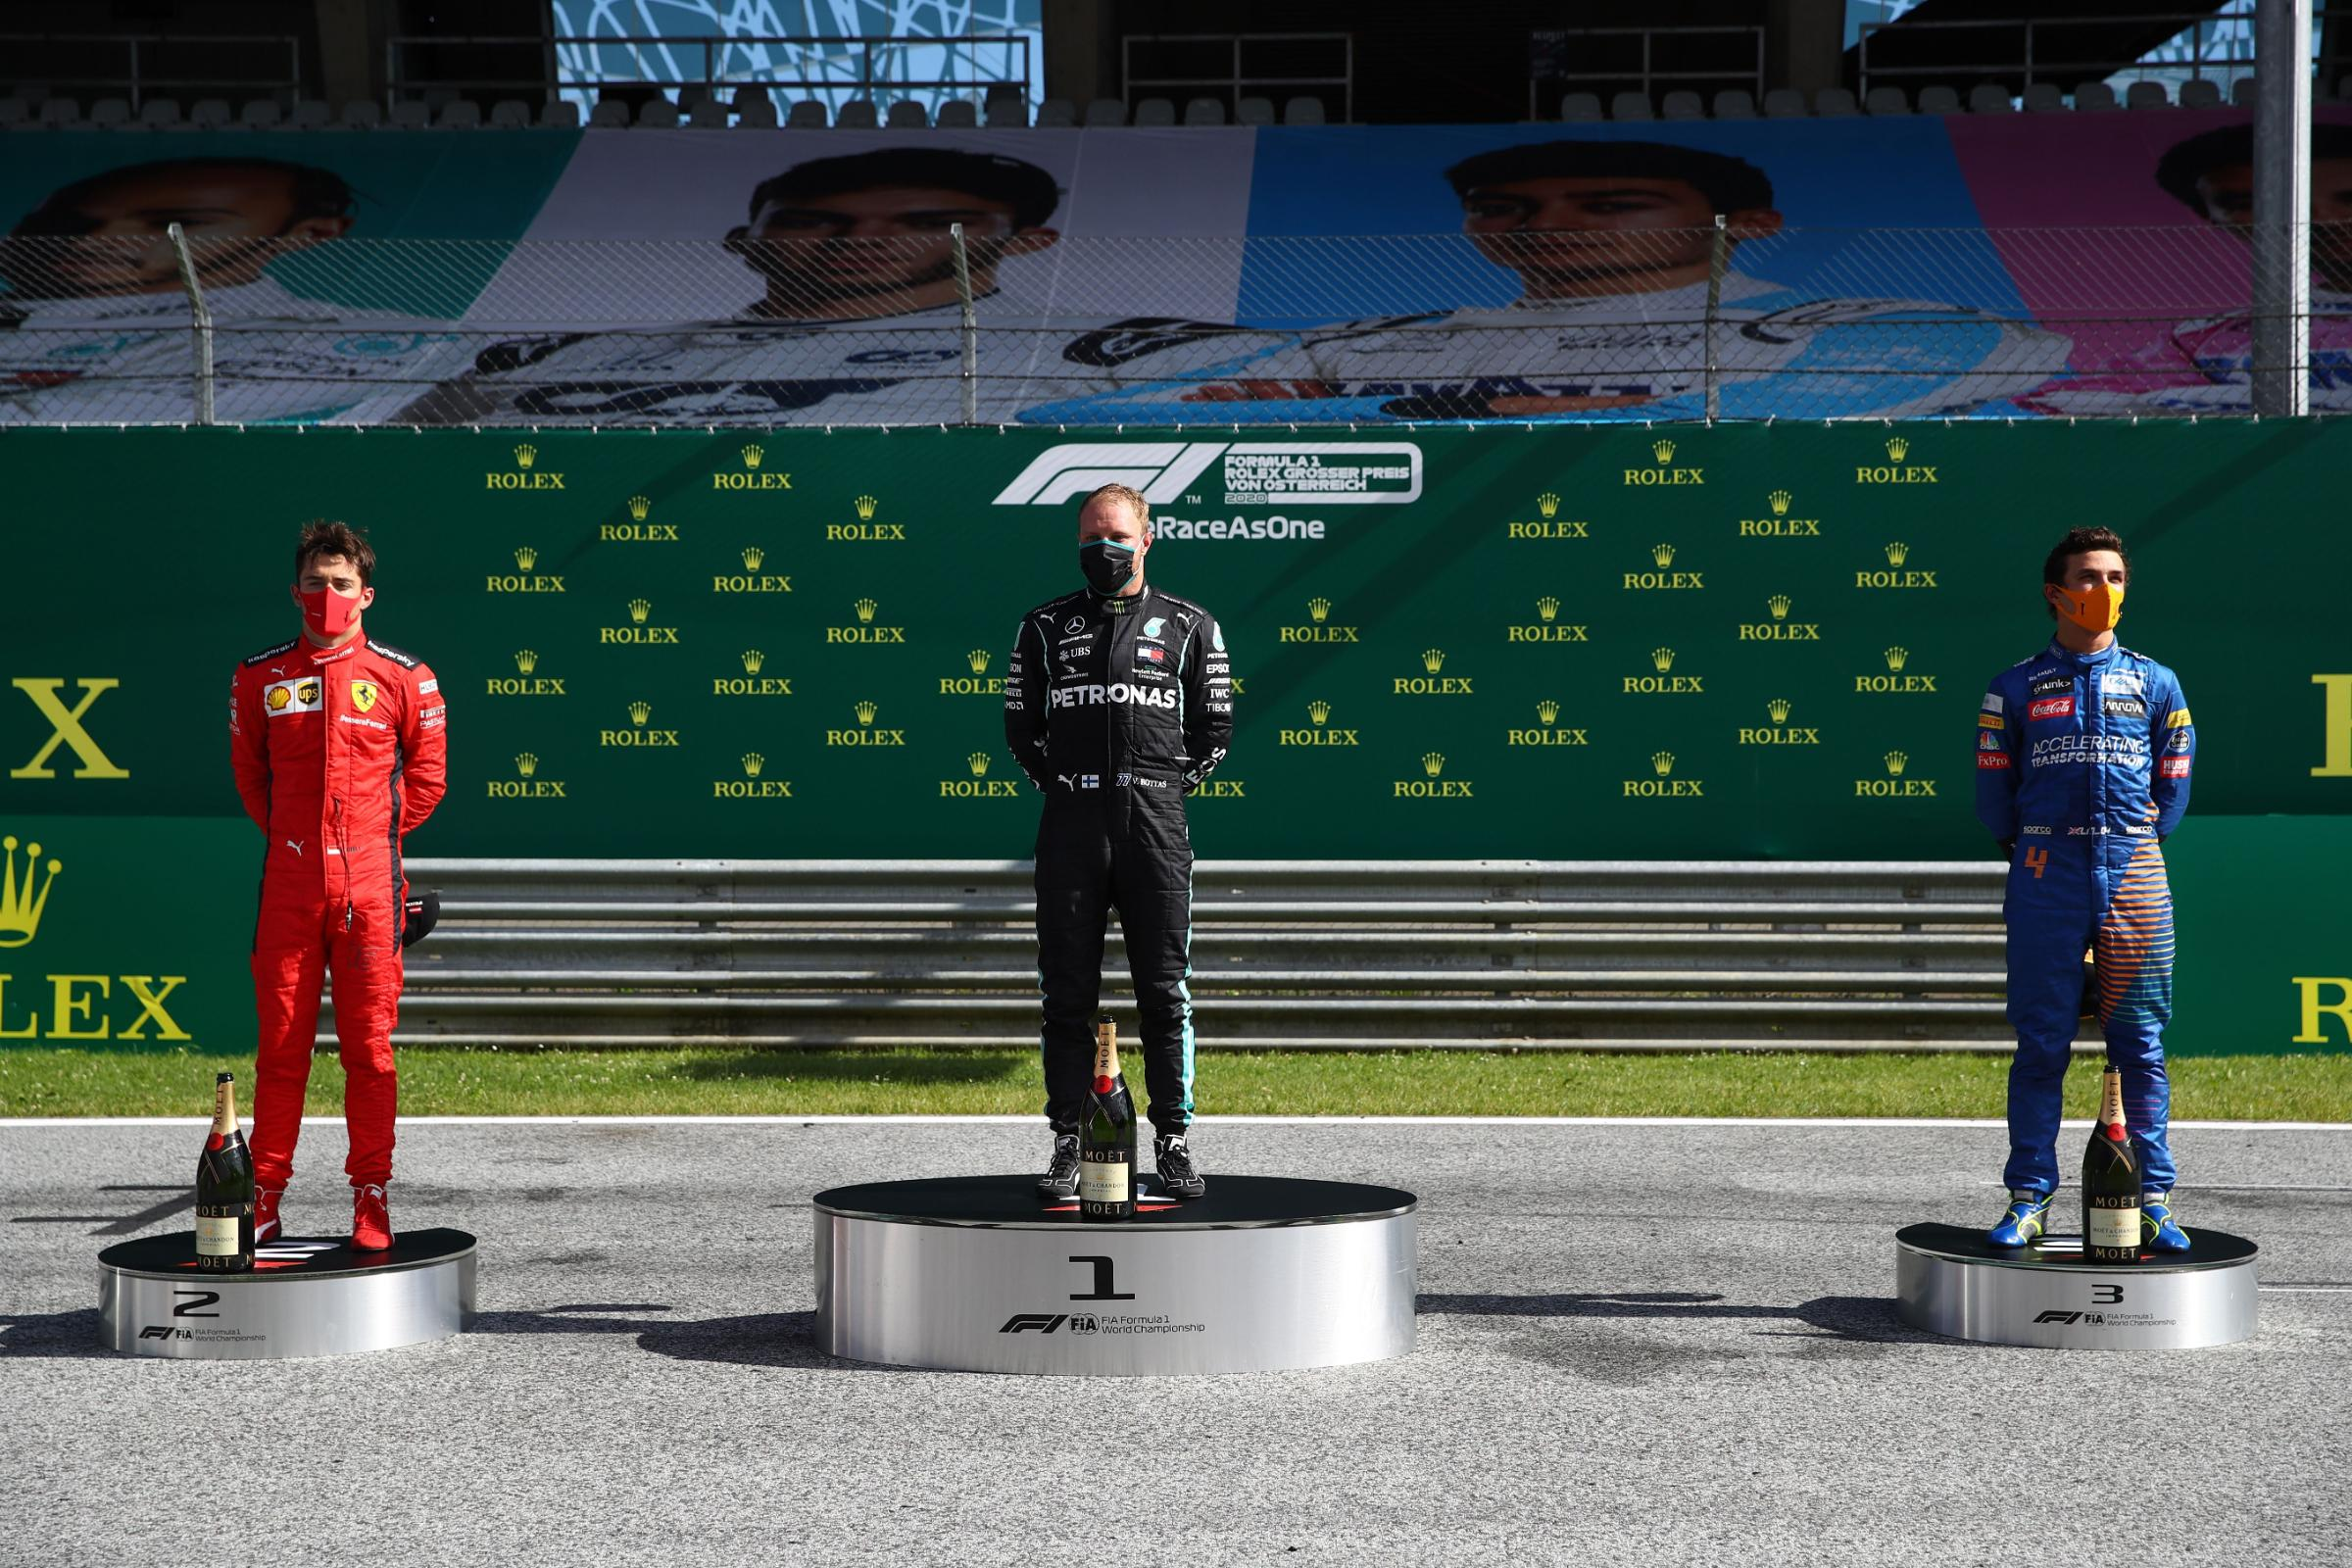 Formula One drivers divided as several choose not to kneel in support of Black Lives Matter movement